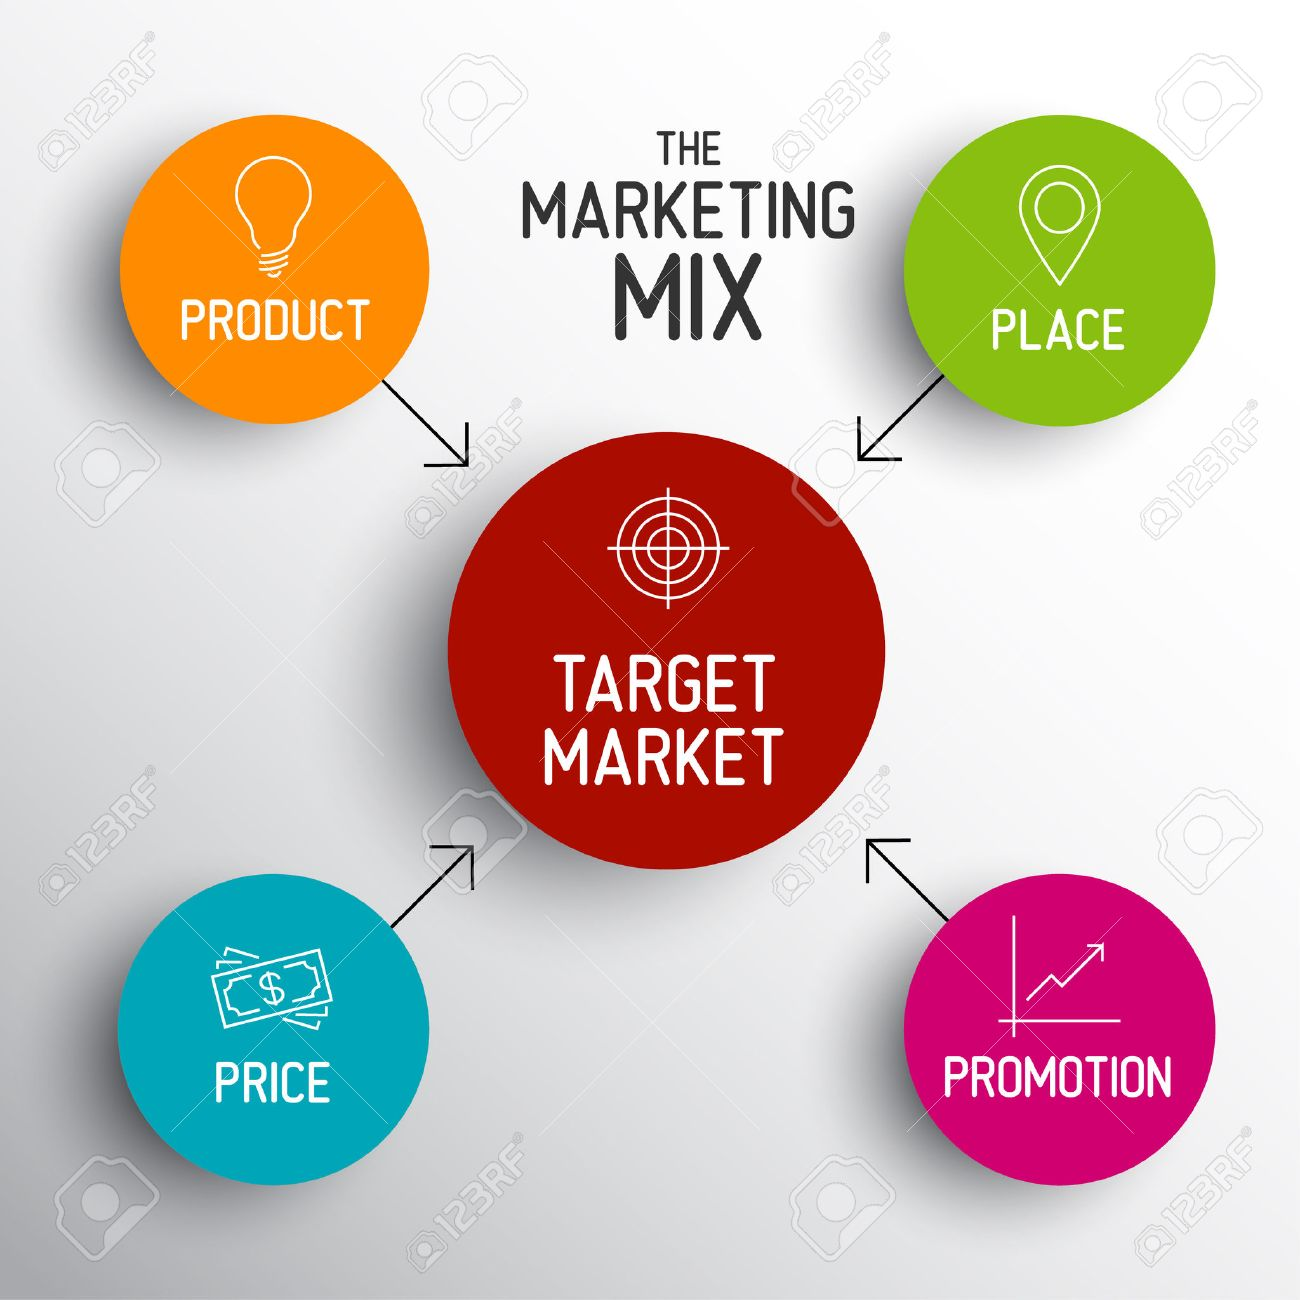 marketing mix essay 4 In this article we will look at 1) role of promotion in the marketing mix, 2) objectives of promotional activities, 3) major targets of promotional campaigns, 4) the promotional mix, 5) types of promotional strategies, 6) managing promotion through the product life cycle, and 7) an example of the promotion mix in action.